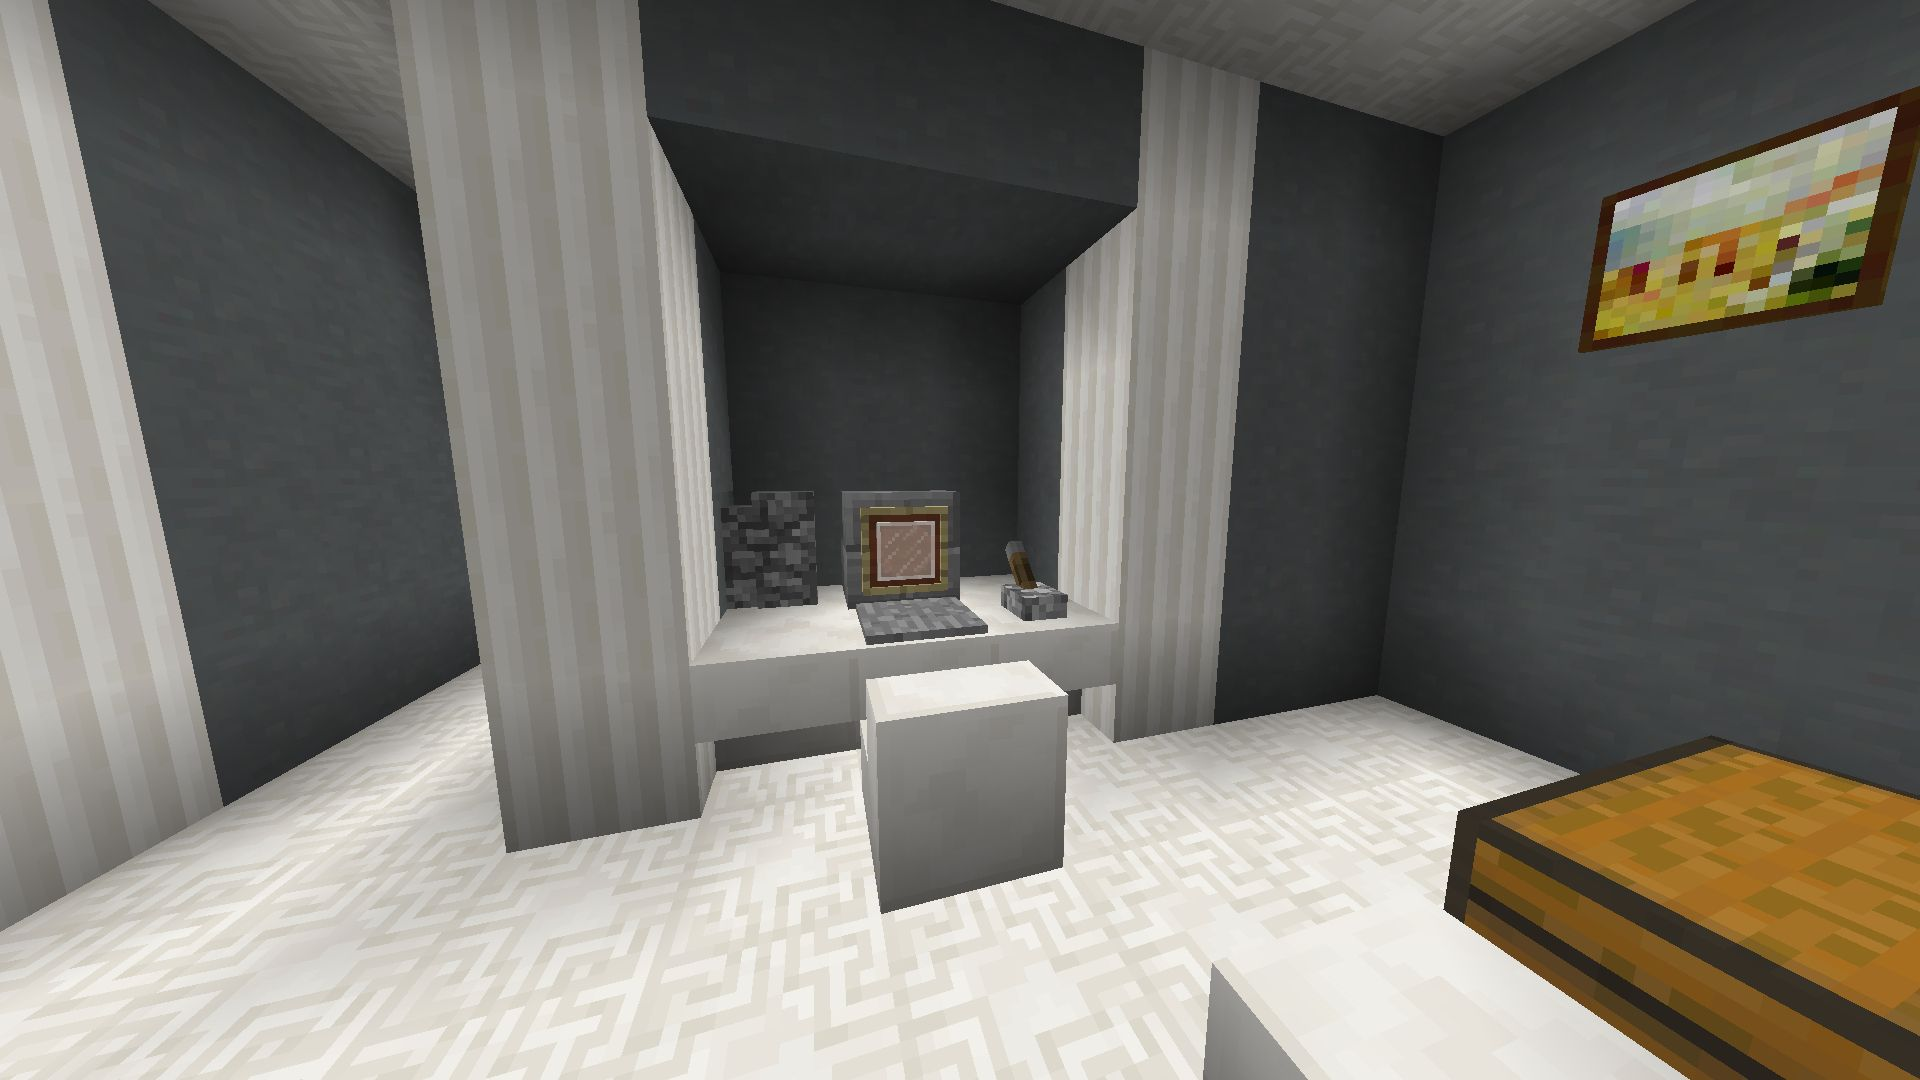 Minecraft computer - Monitor is made from stone bricks stairs and ...